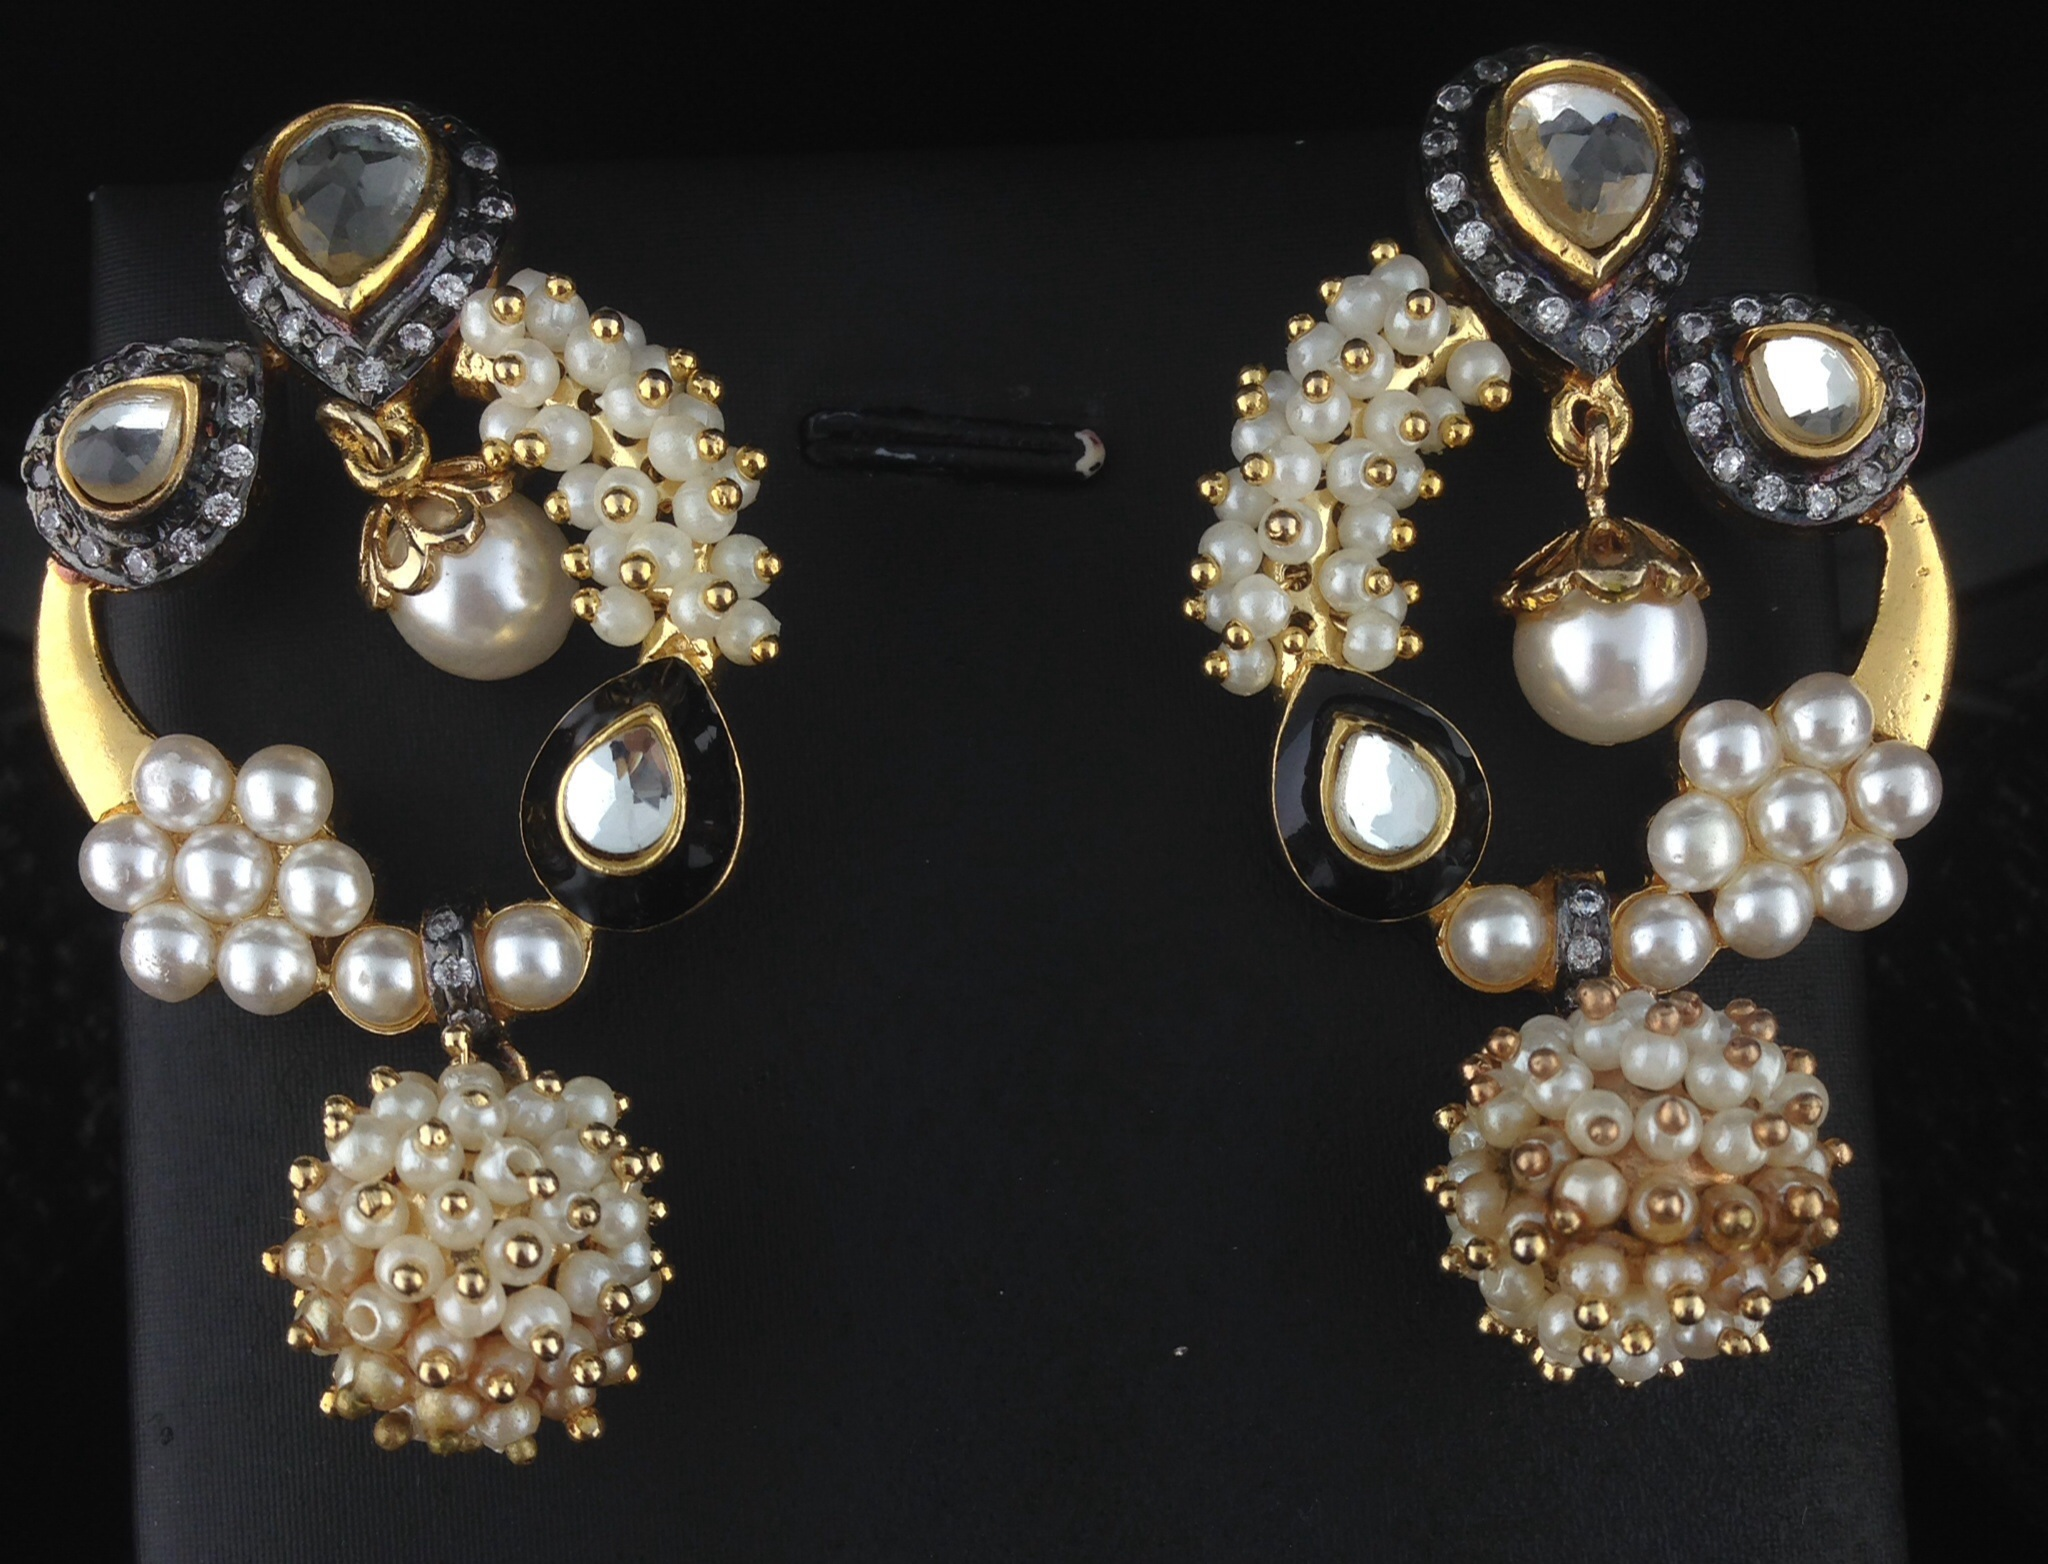 Designer Two Tone Teardrop Earrings With Pearls And Crystals